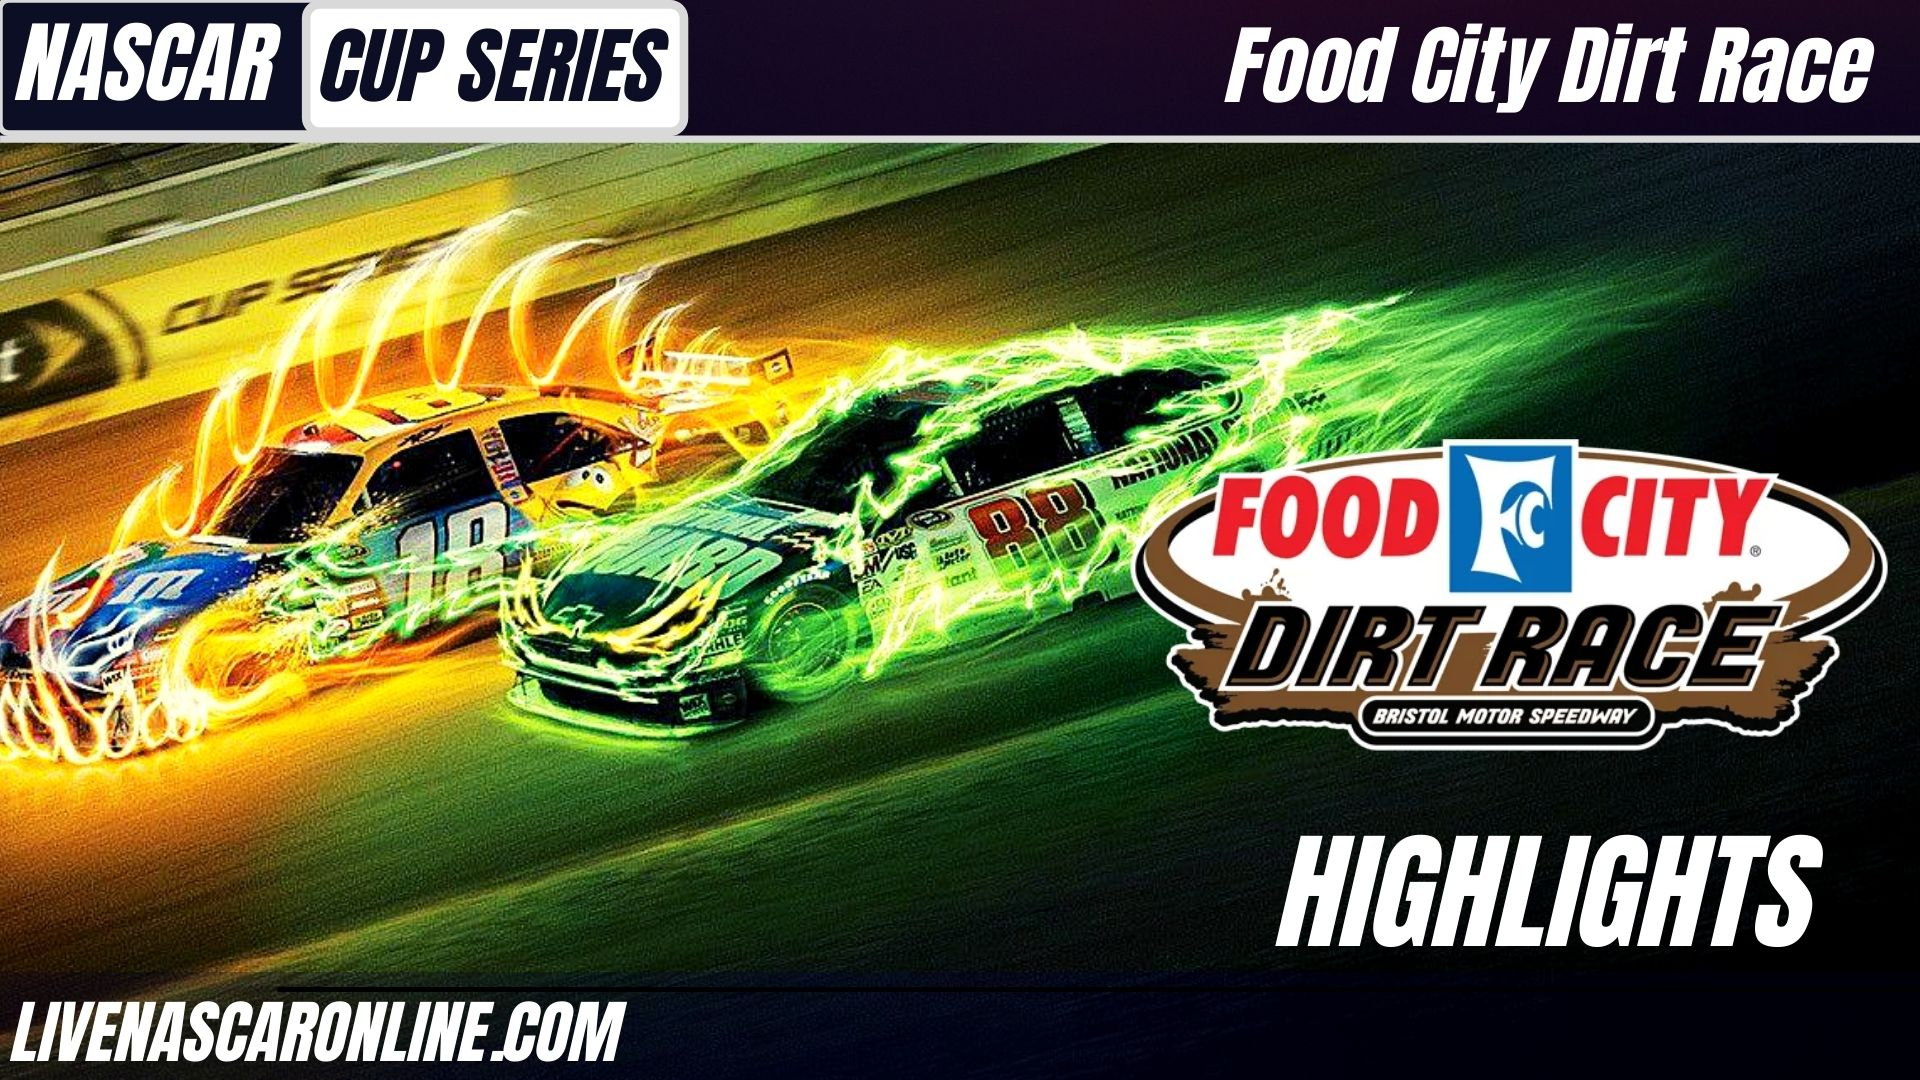 Food City Dirt Race Highlights 2021 Nascar Cup Series